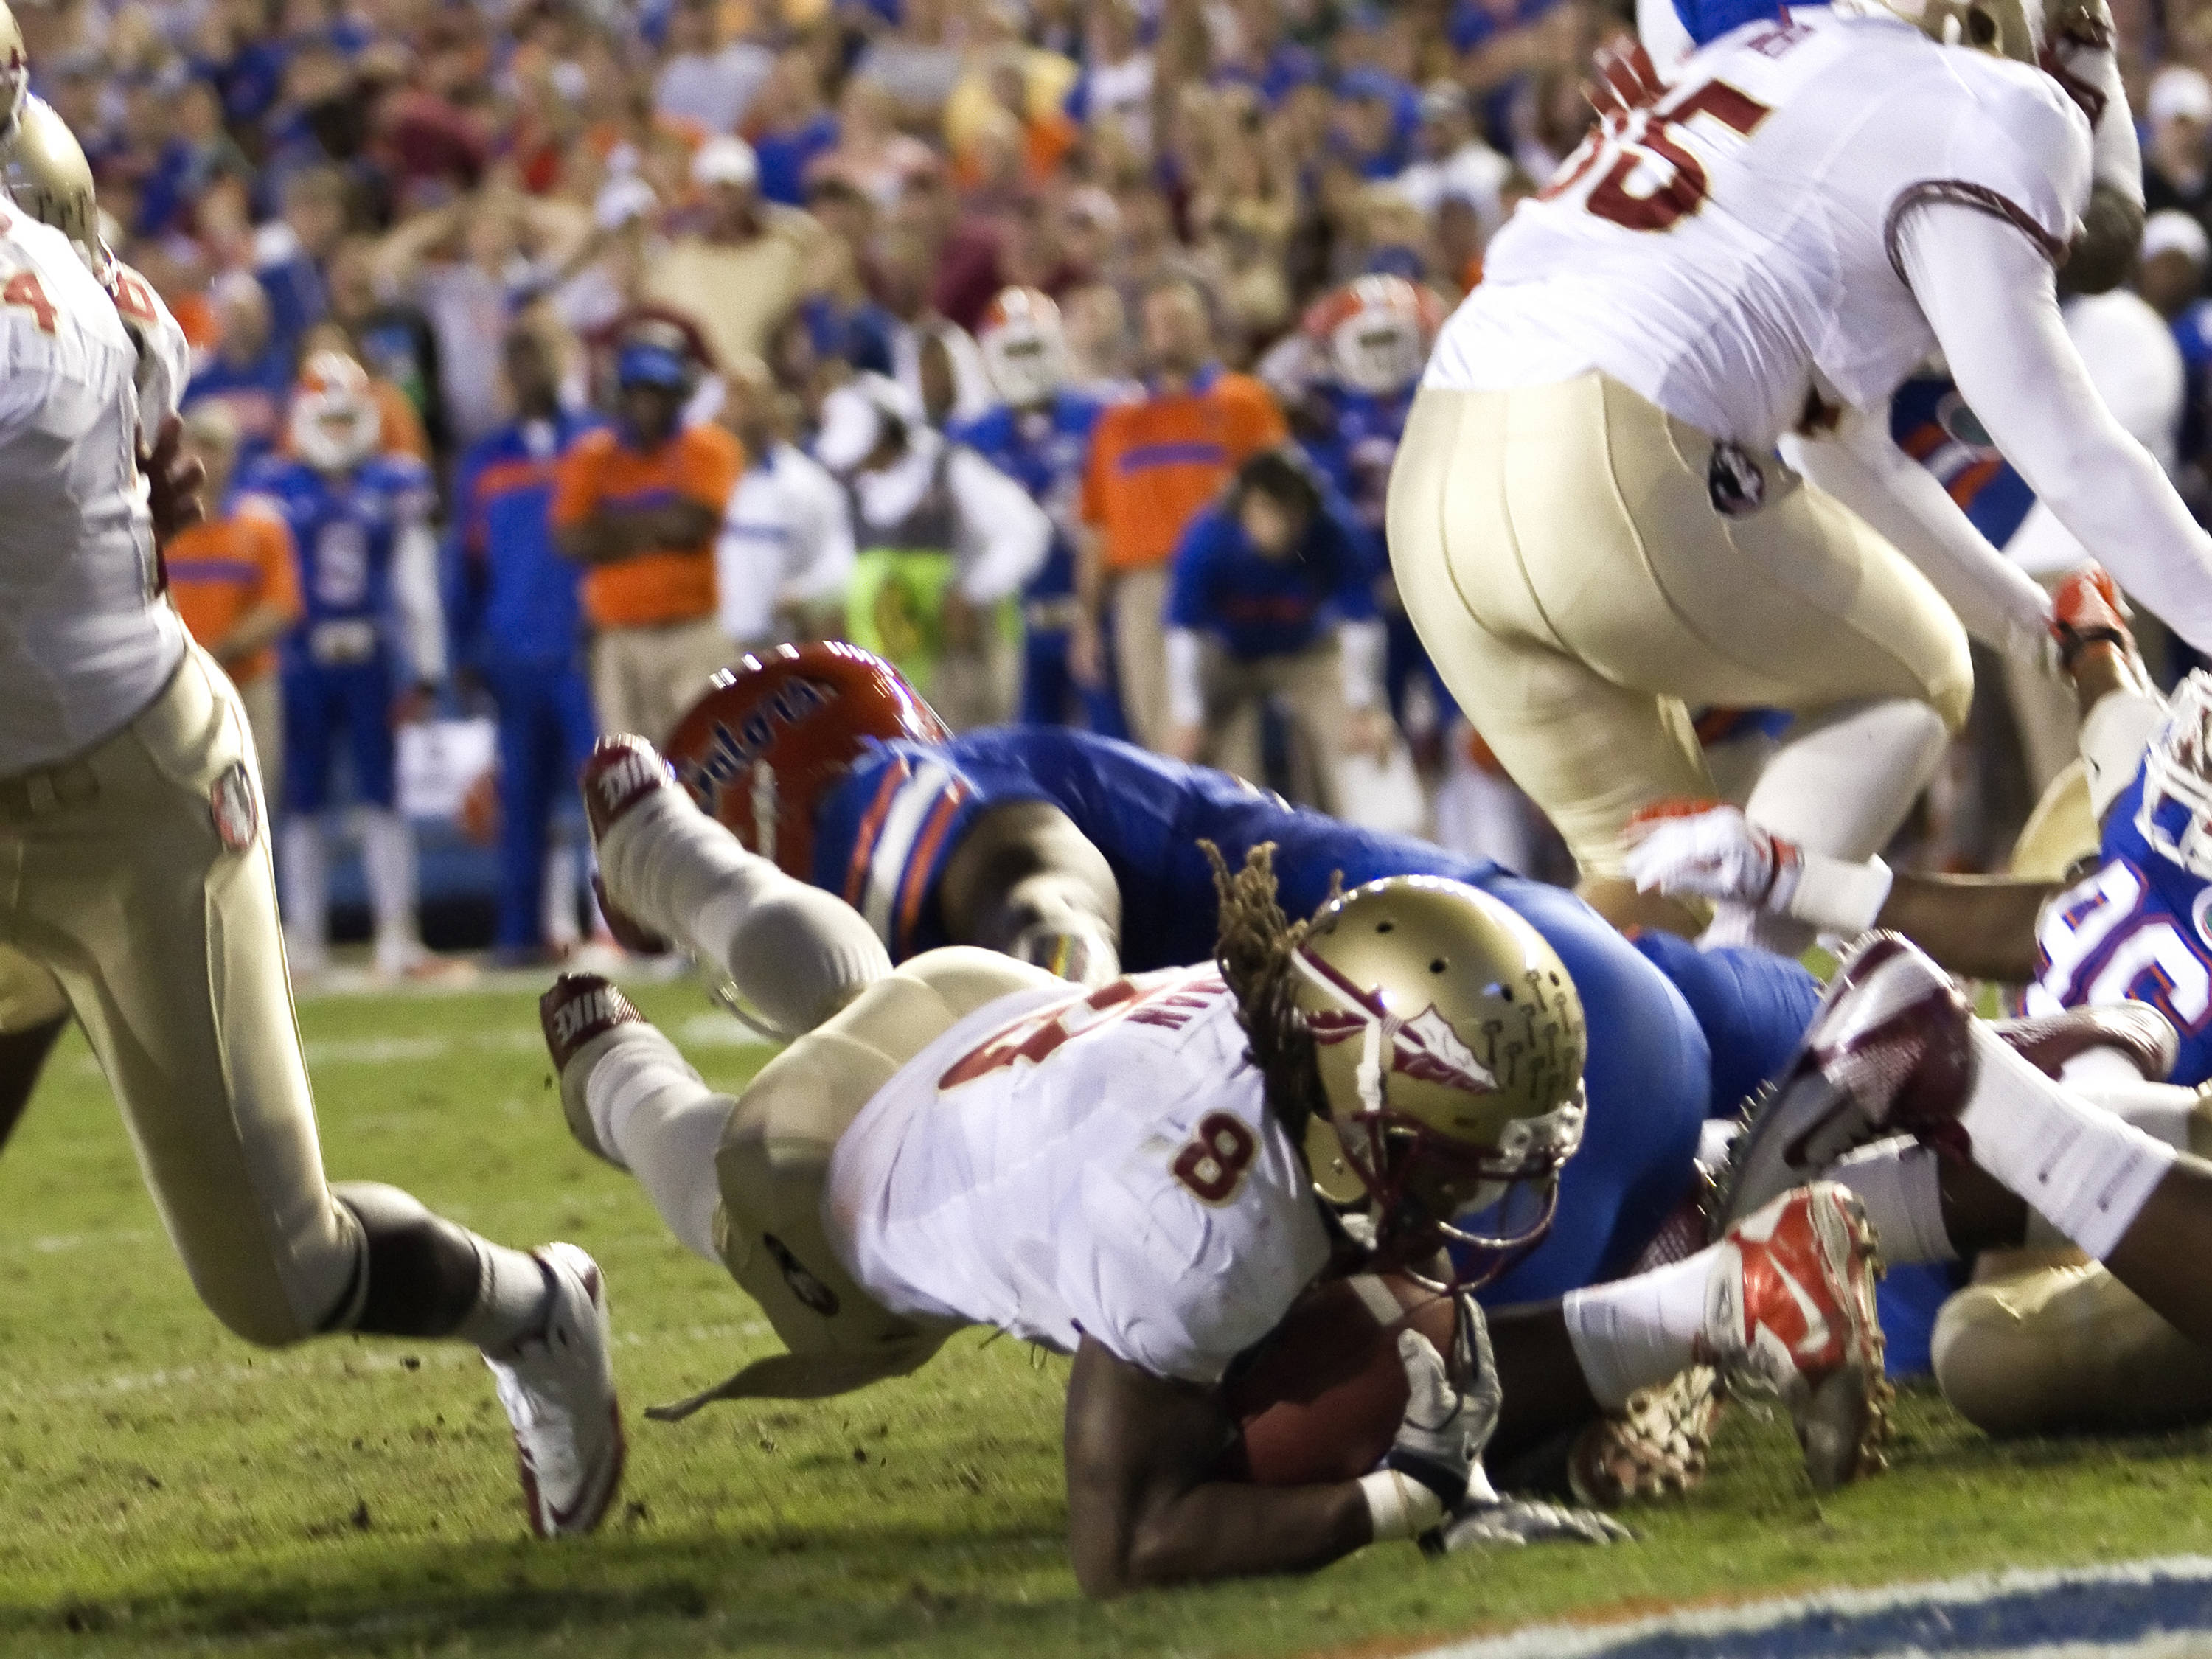 Devonta Freeman (8), scoring, FSU vs Florida, 11/26/2011